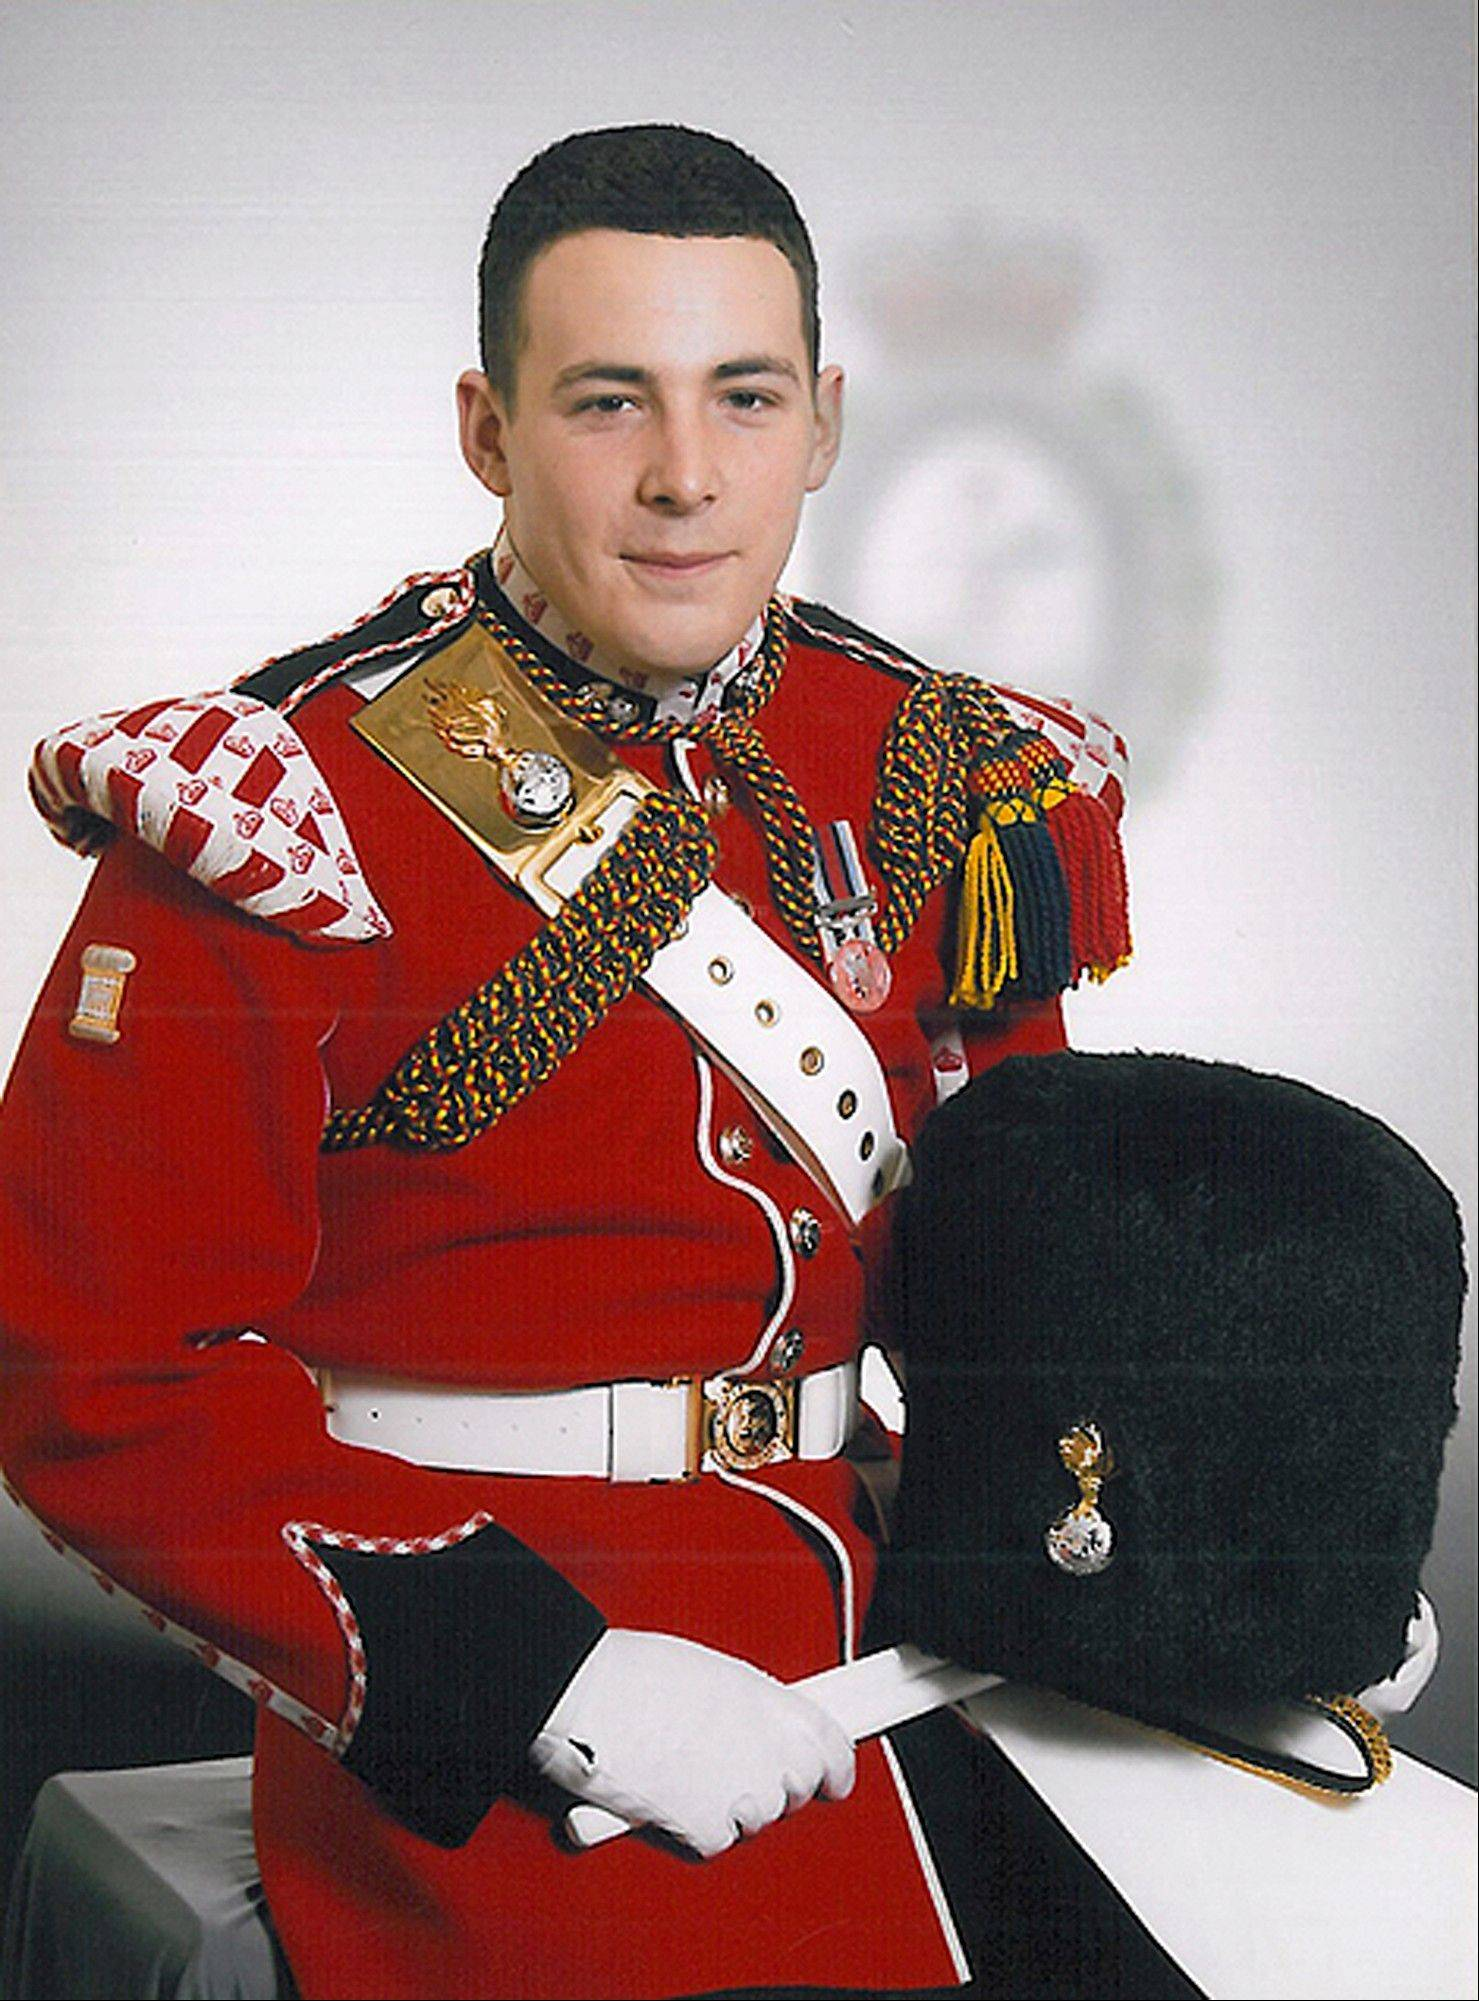 Britain�s Ministry of Defense said the soldier killed was Lee Rigby, of 2nd Battalion The Royal Regiment of Fusiliers. Rigby, a 25-year-old with a 2-year-old son joined the army in 2006 and was posted first to Cyprus and later served in Afghanistan and Germany. He took up a recruiting post with the military in London in 2011.